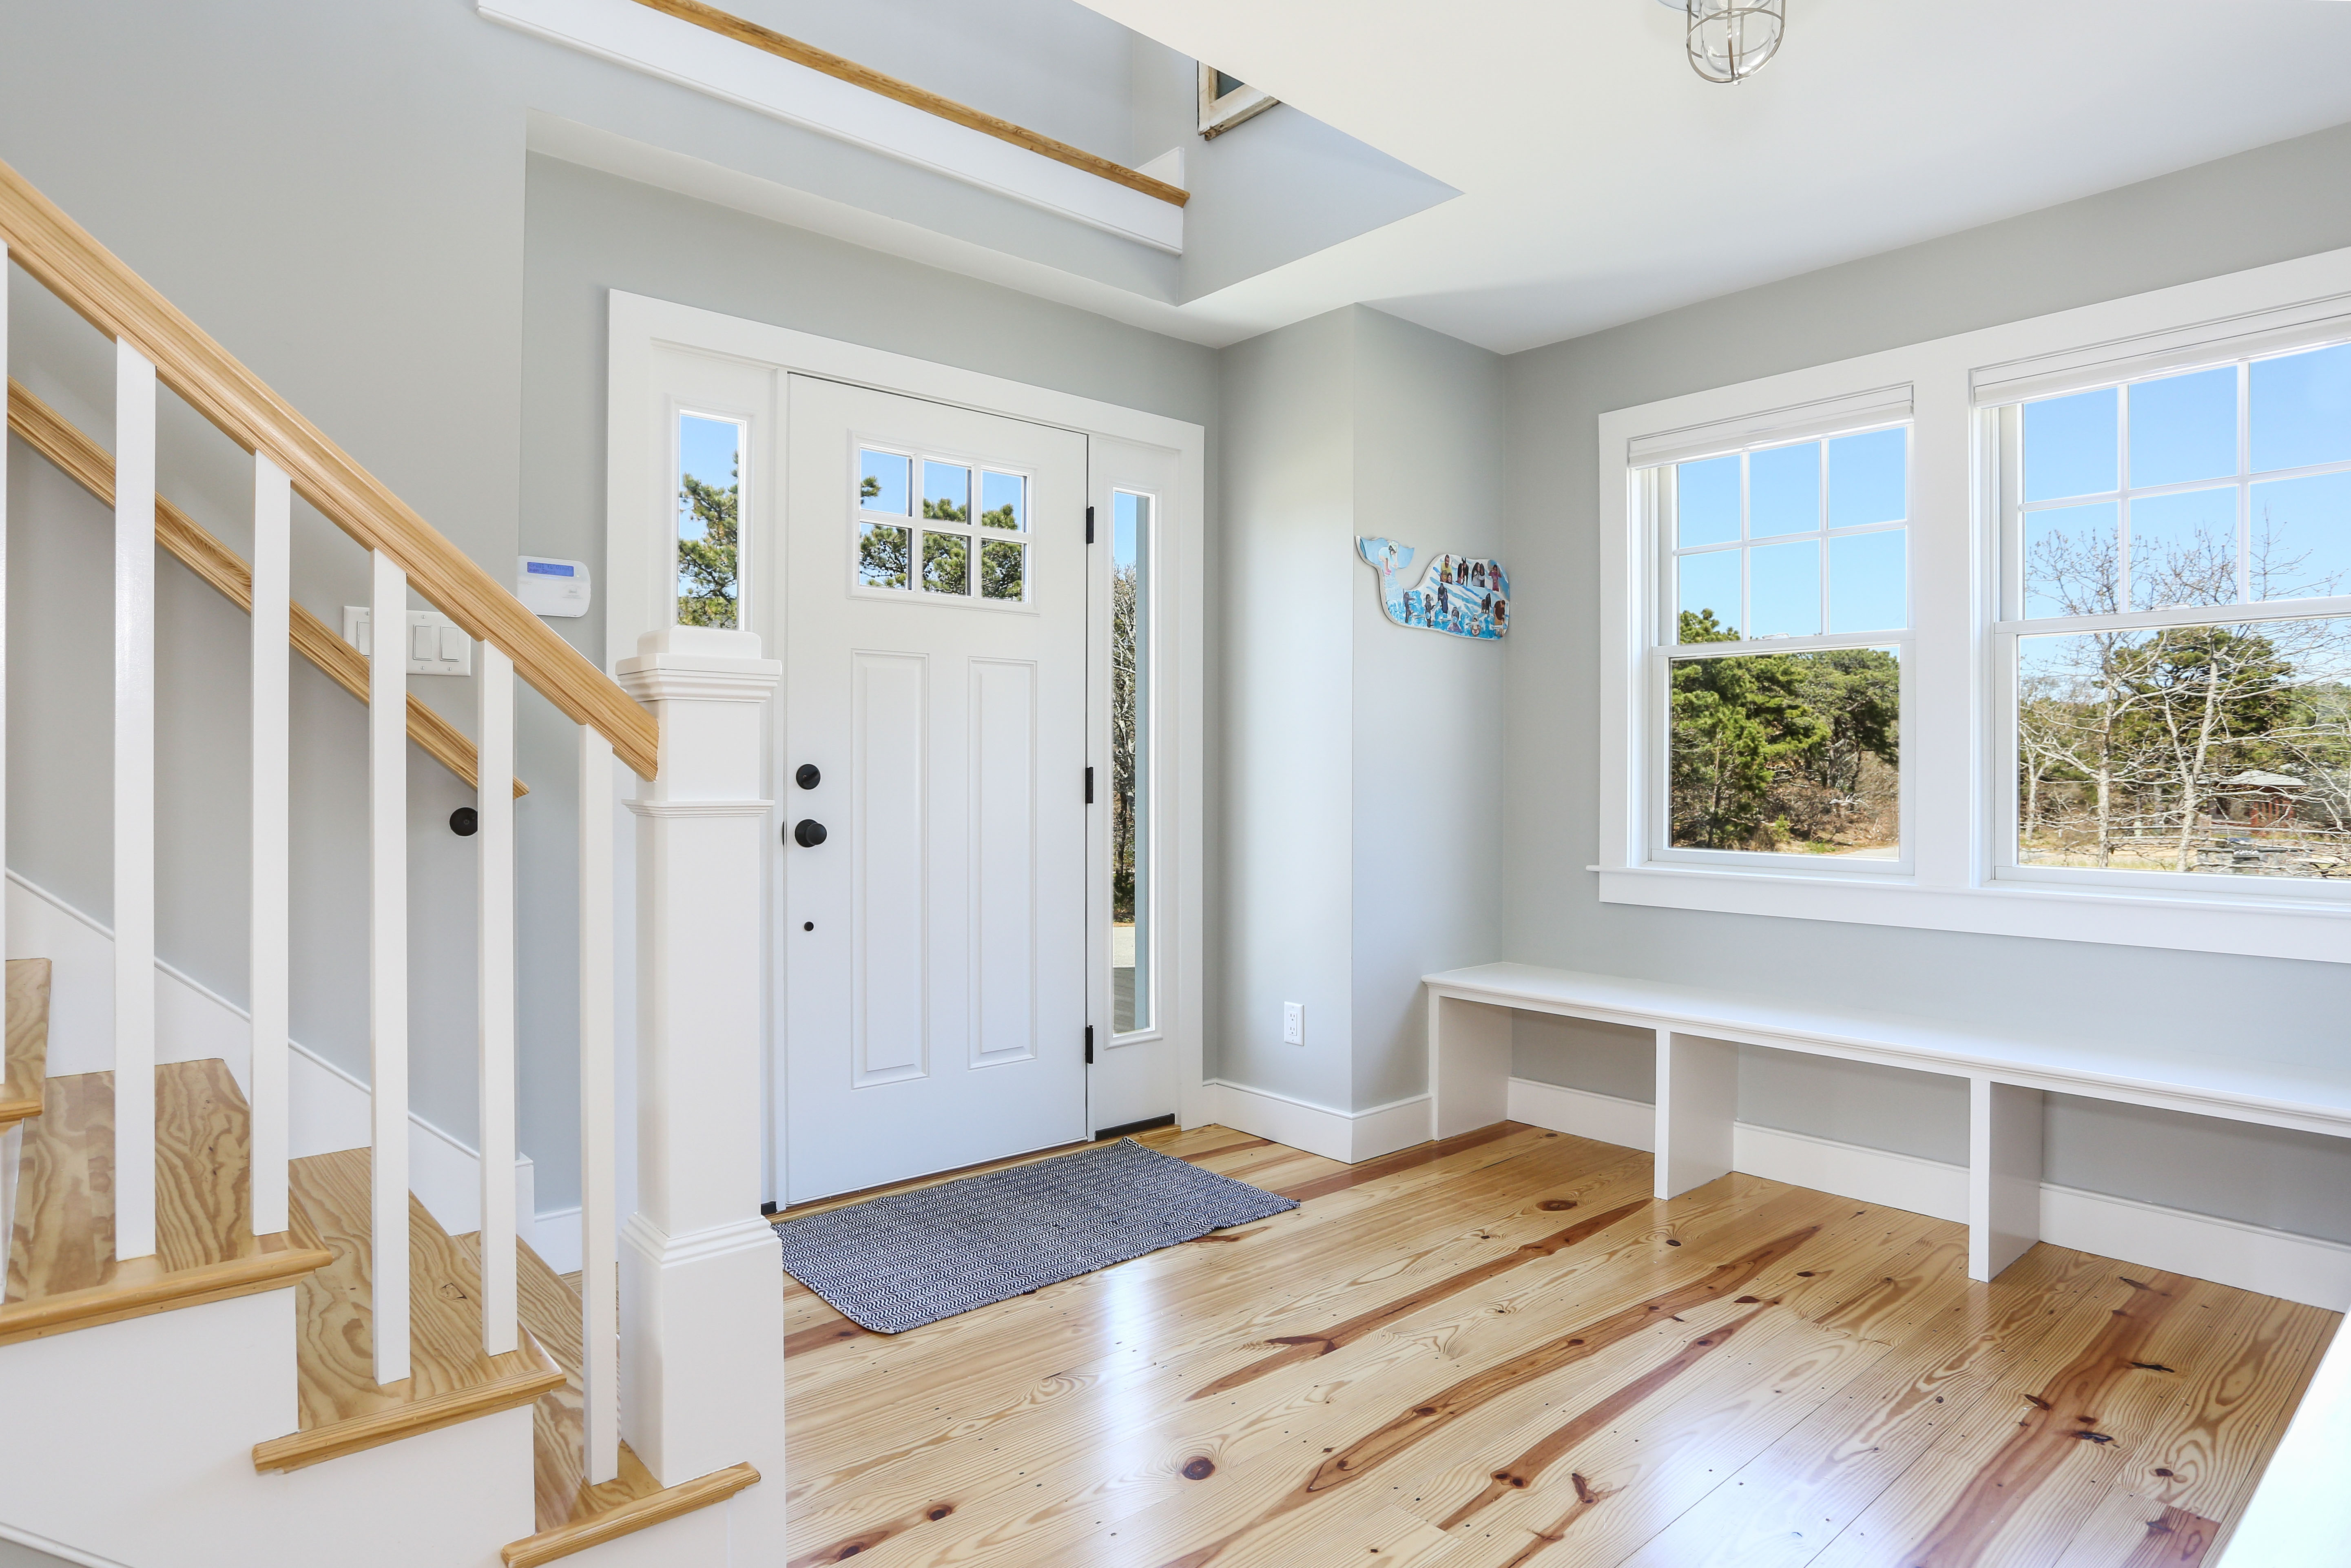 Entry foyer with bench cape cod by REEF